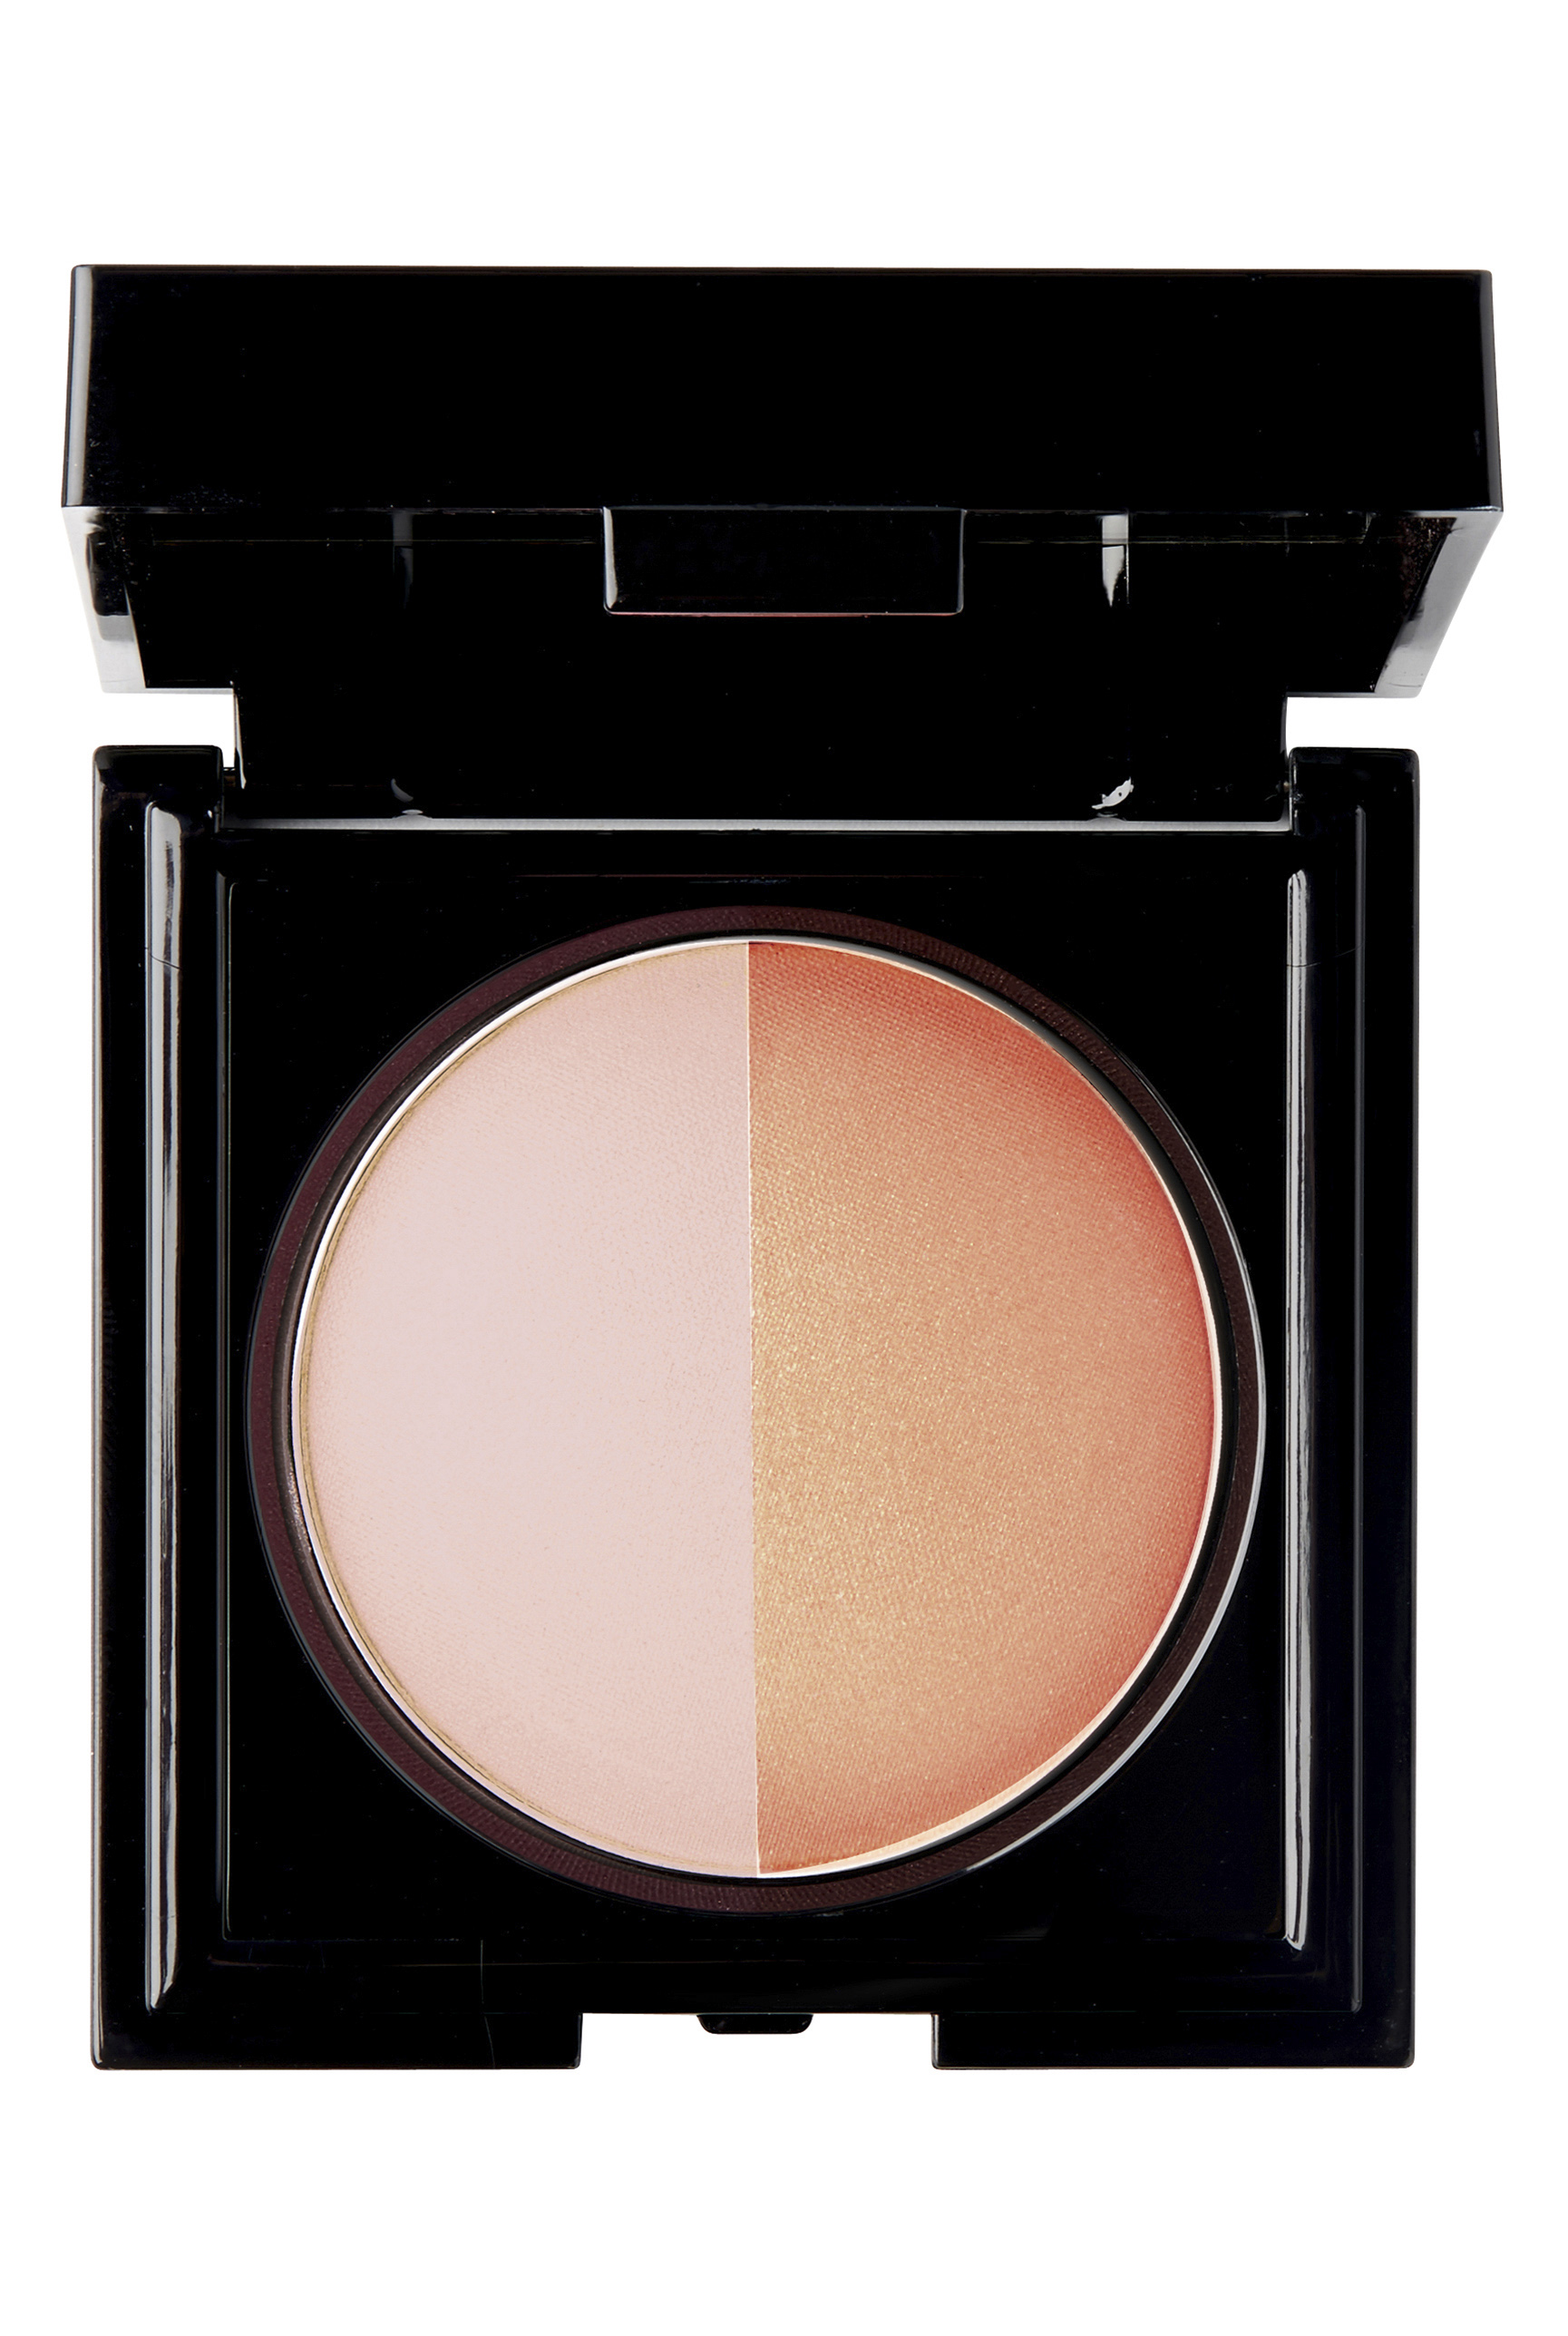 60172154_witcherybeauty-cheek-palette-in-sorbet-rrp21-90